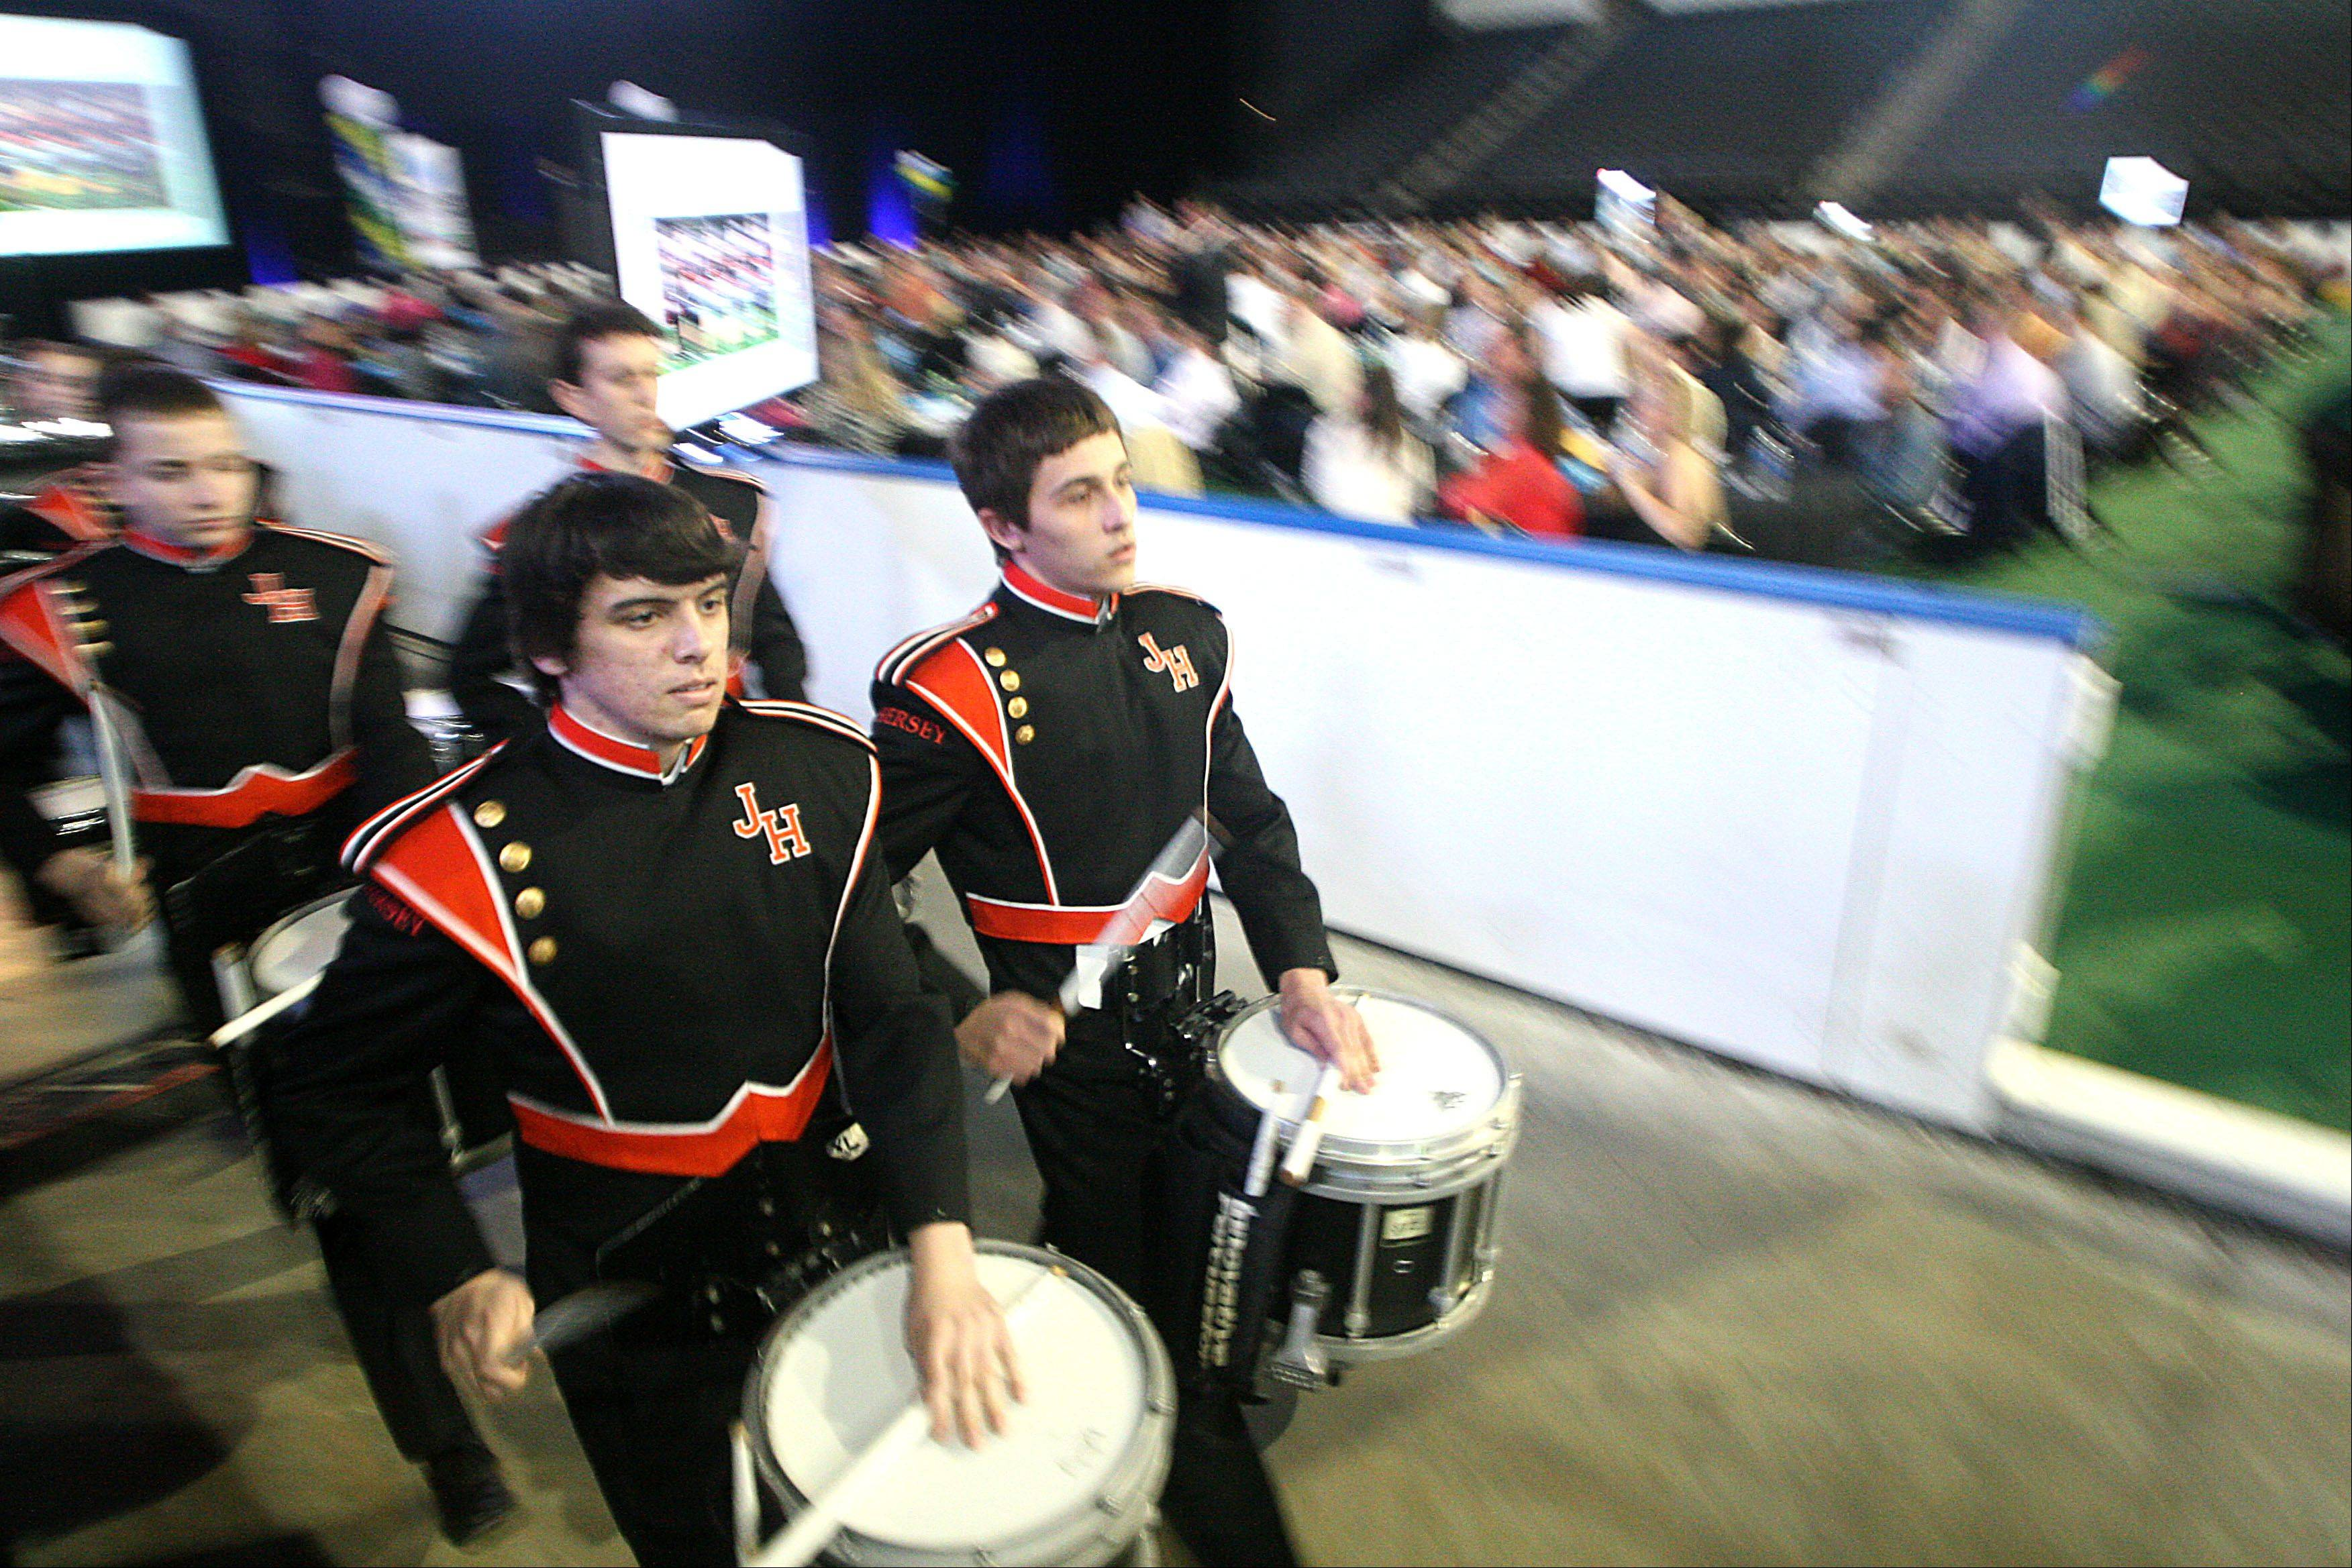 Patrick Kunzer/pkunzer@dailyherald.comMembers of the John Hersey High School drum line perform during the Daily Herald Prep Sports Excellence Awards Ceremony at Sears Centre Arena in Hoffman Estates on Sunday.